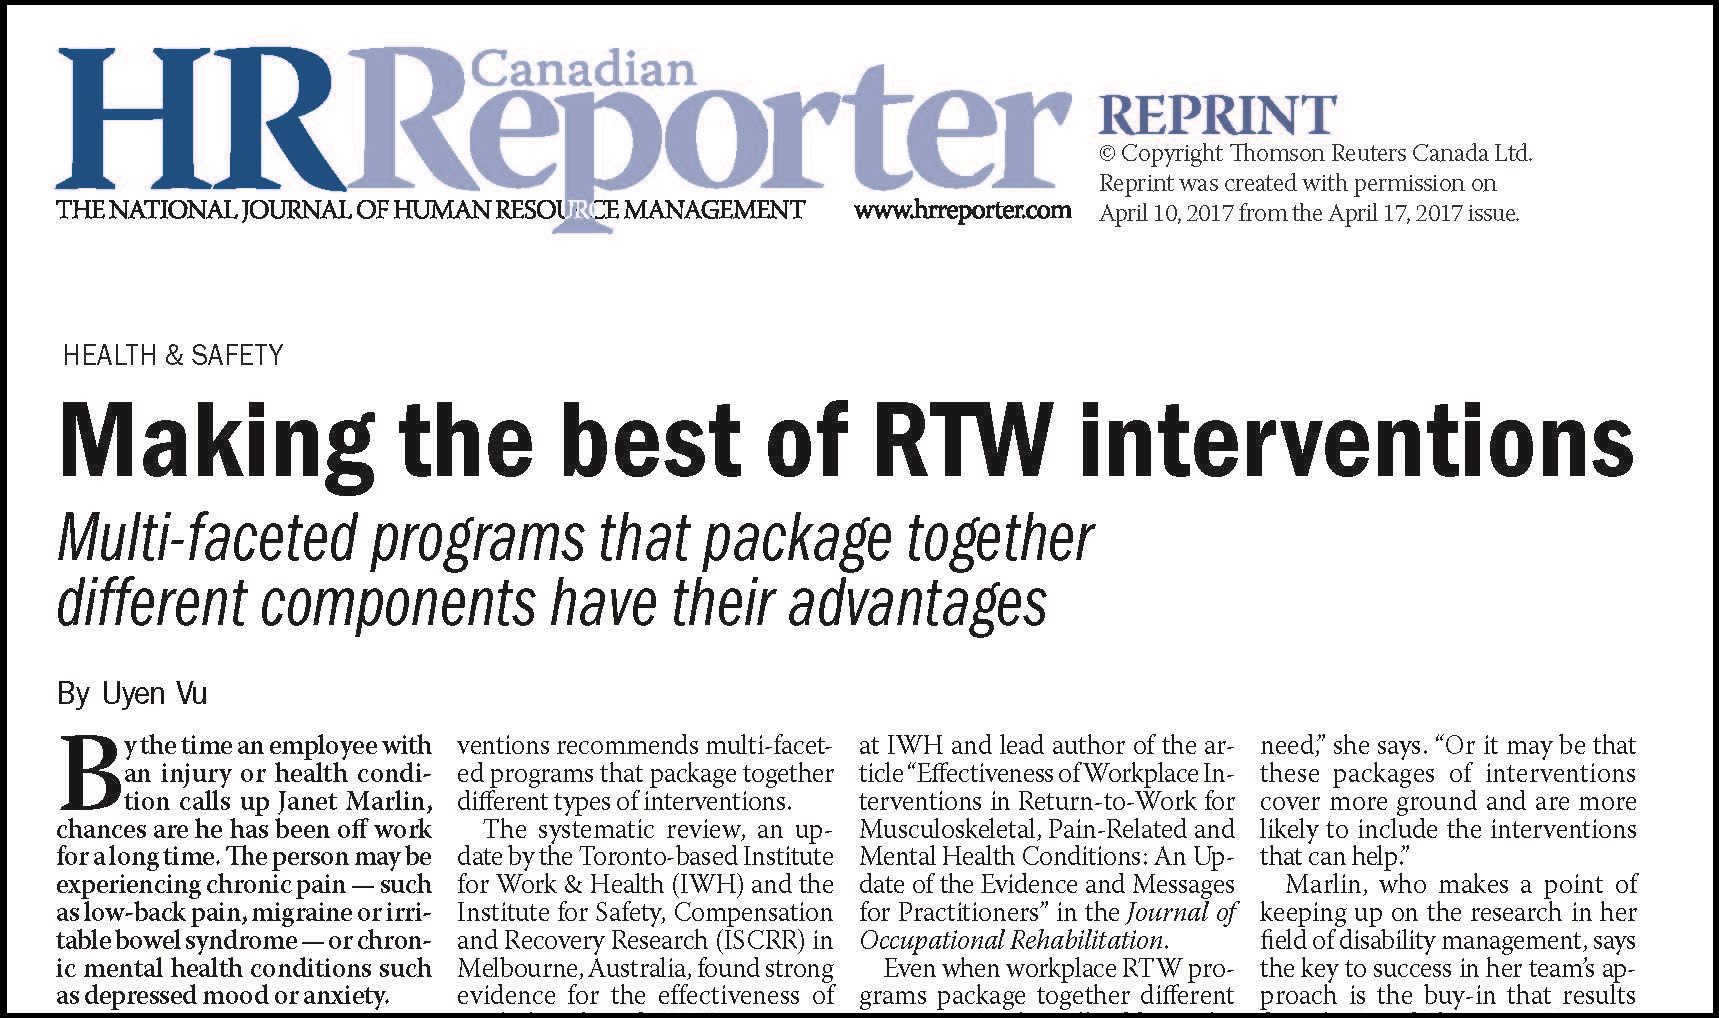 https://ohs-jma.com/wp-content/uploads/2016/06/Making-the-best-of-RTW-interventions-1.jpg